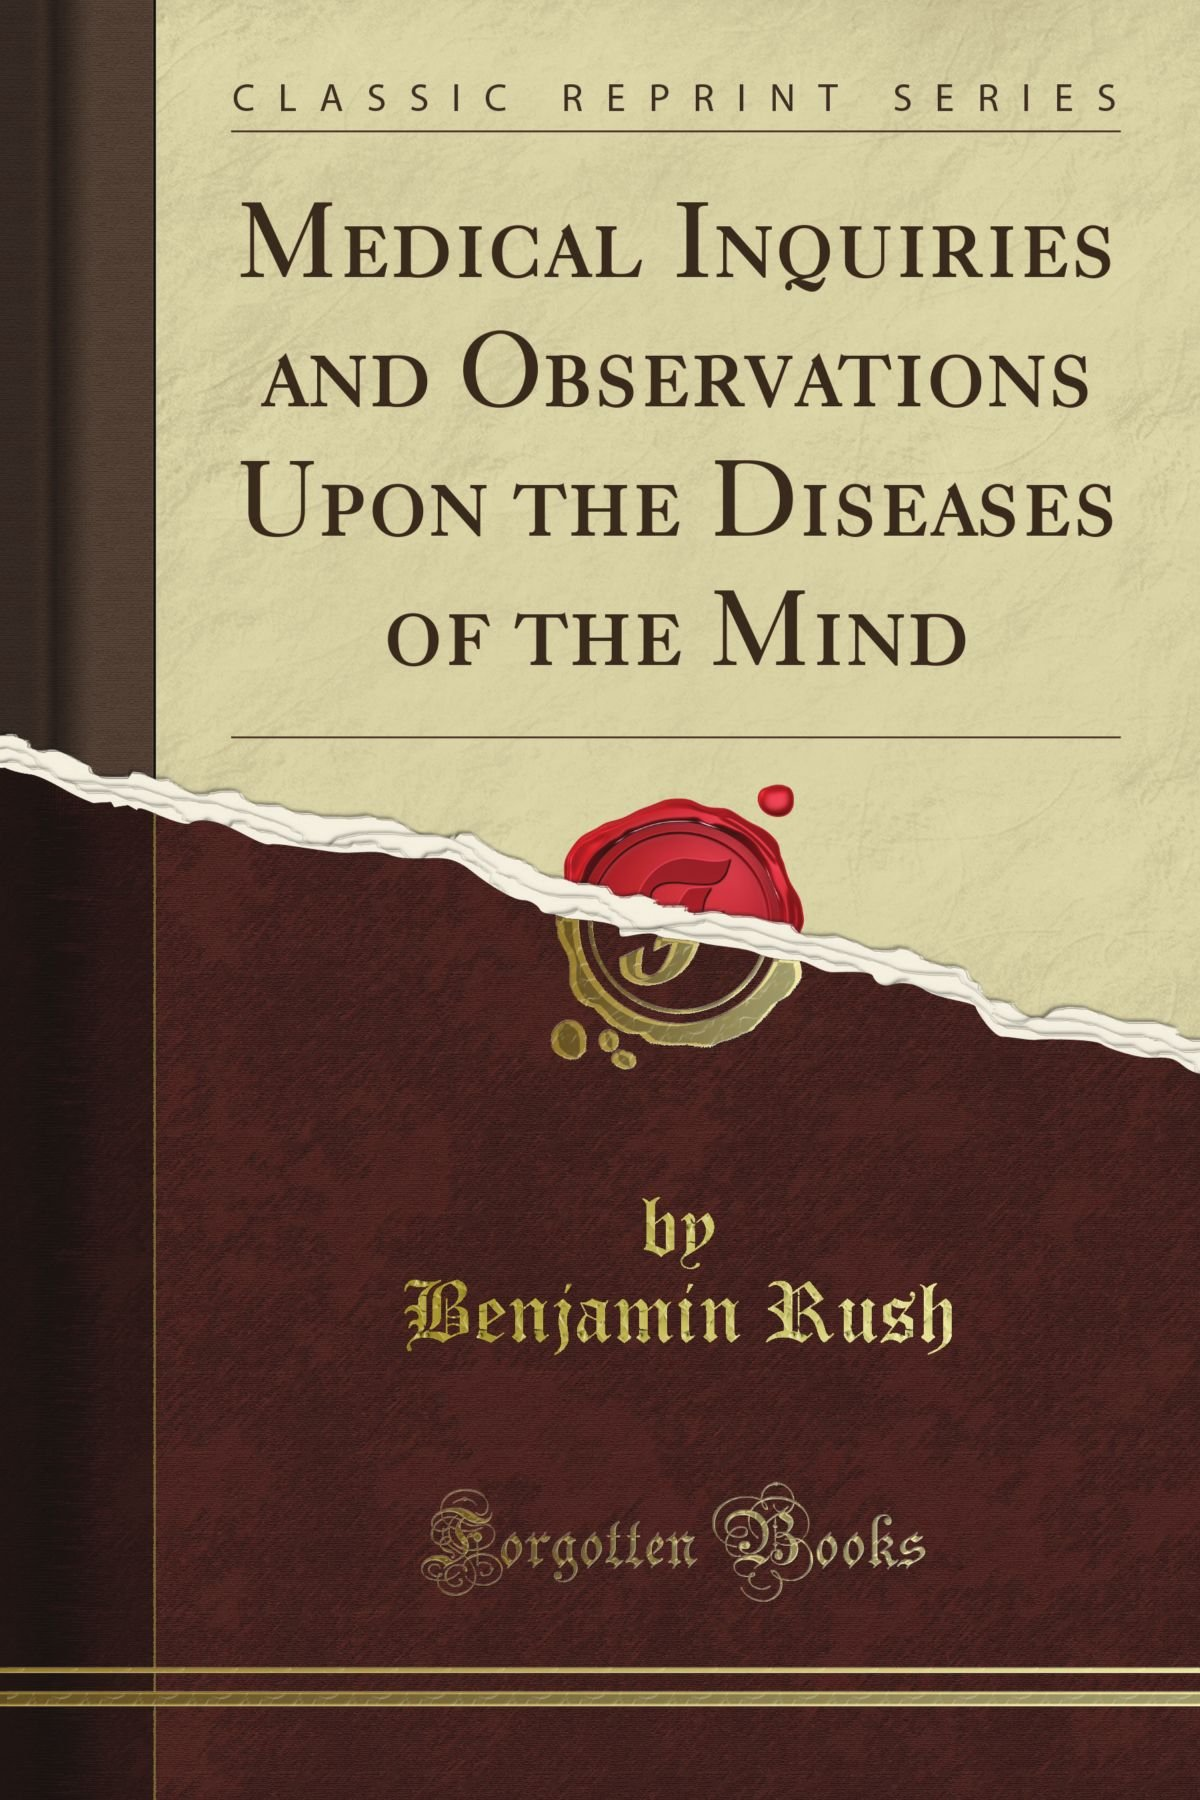 Medical Inquiries and Observations Upon the Diseases of the Mind (Classic  Reprint): Benjamin Rush: Amazon.com: Books